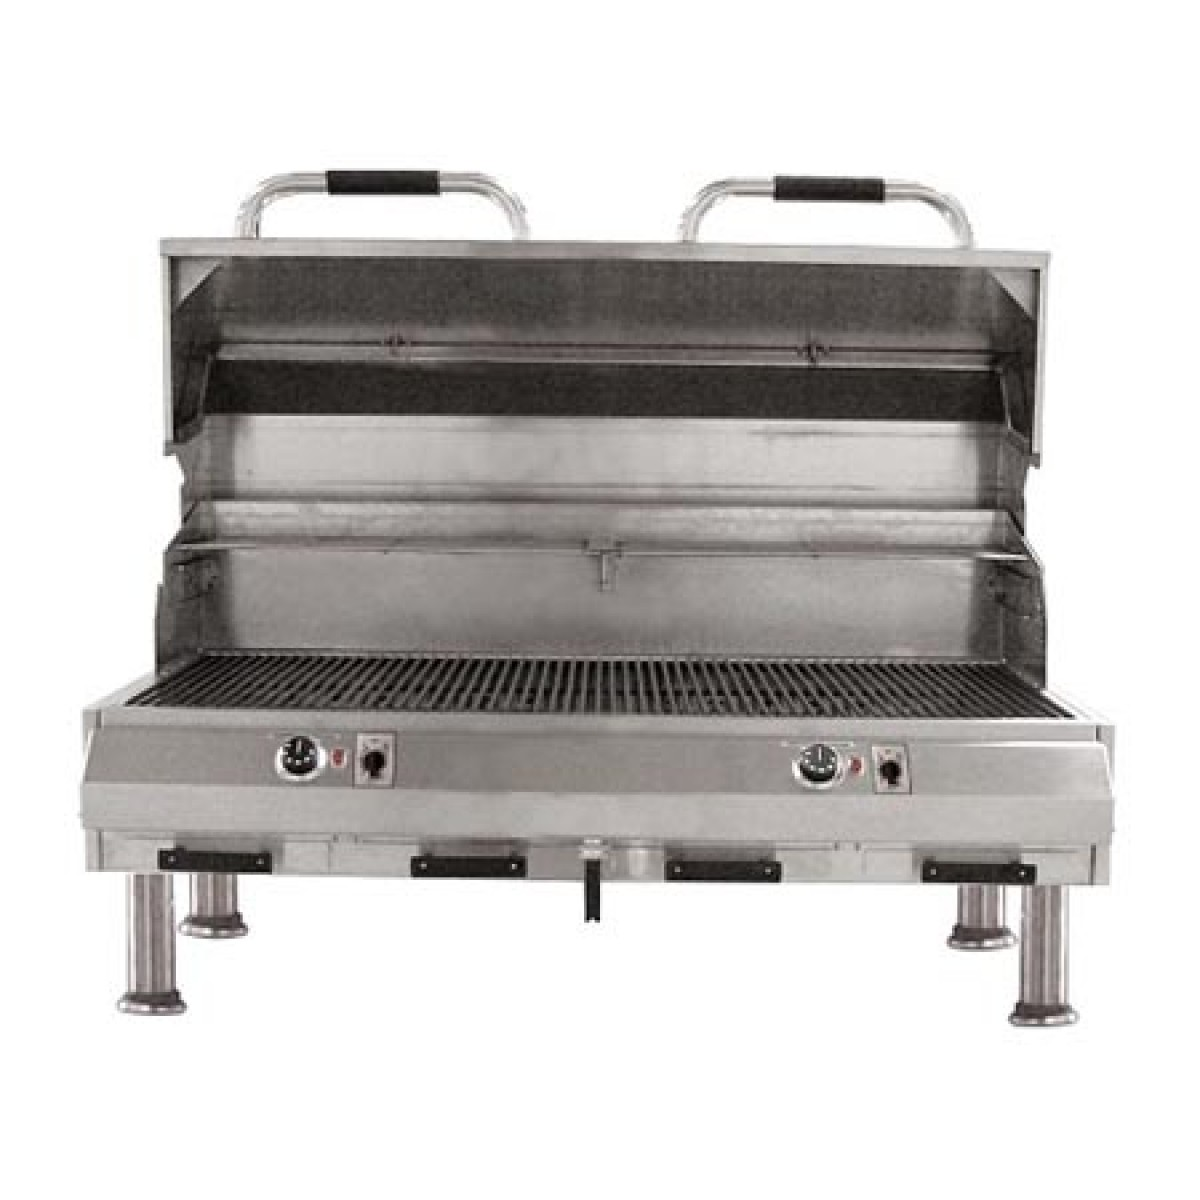 electri chef 8800 series 48in table top barbecue grill ibuybarbecues. Black Bedroom Furniture Sets. Home Design Ideas